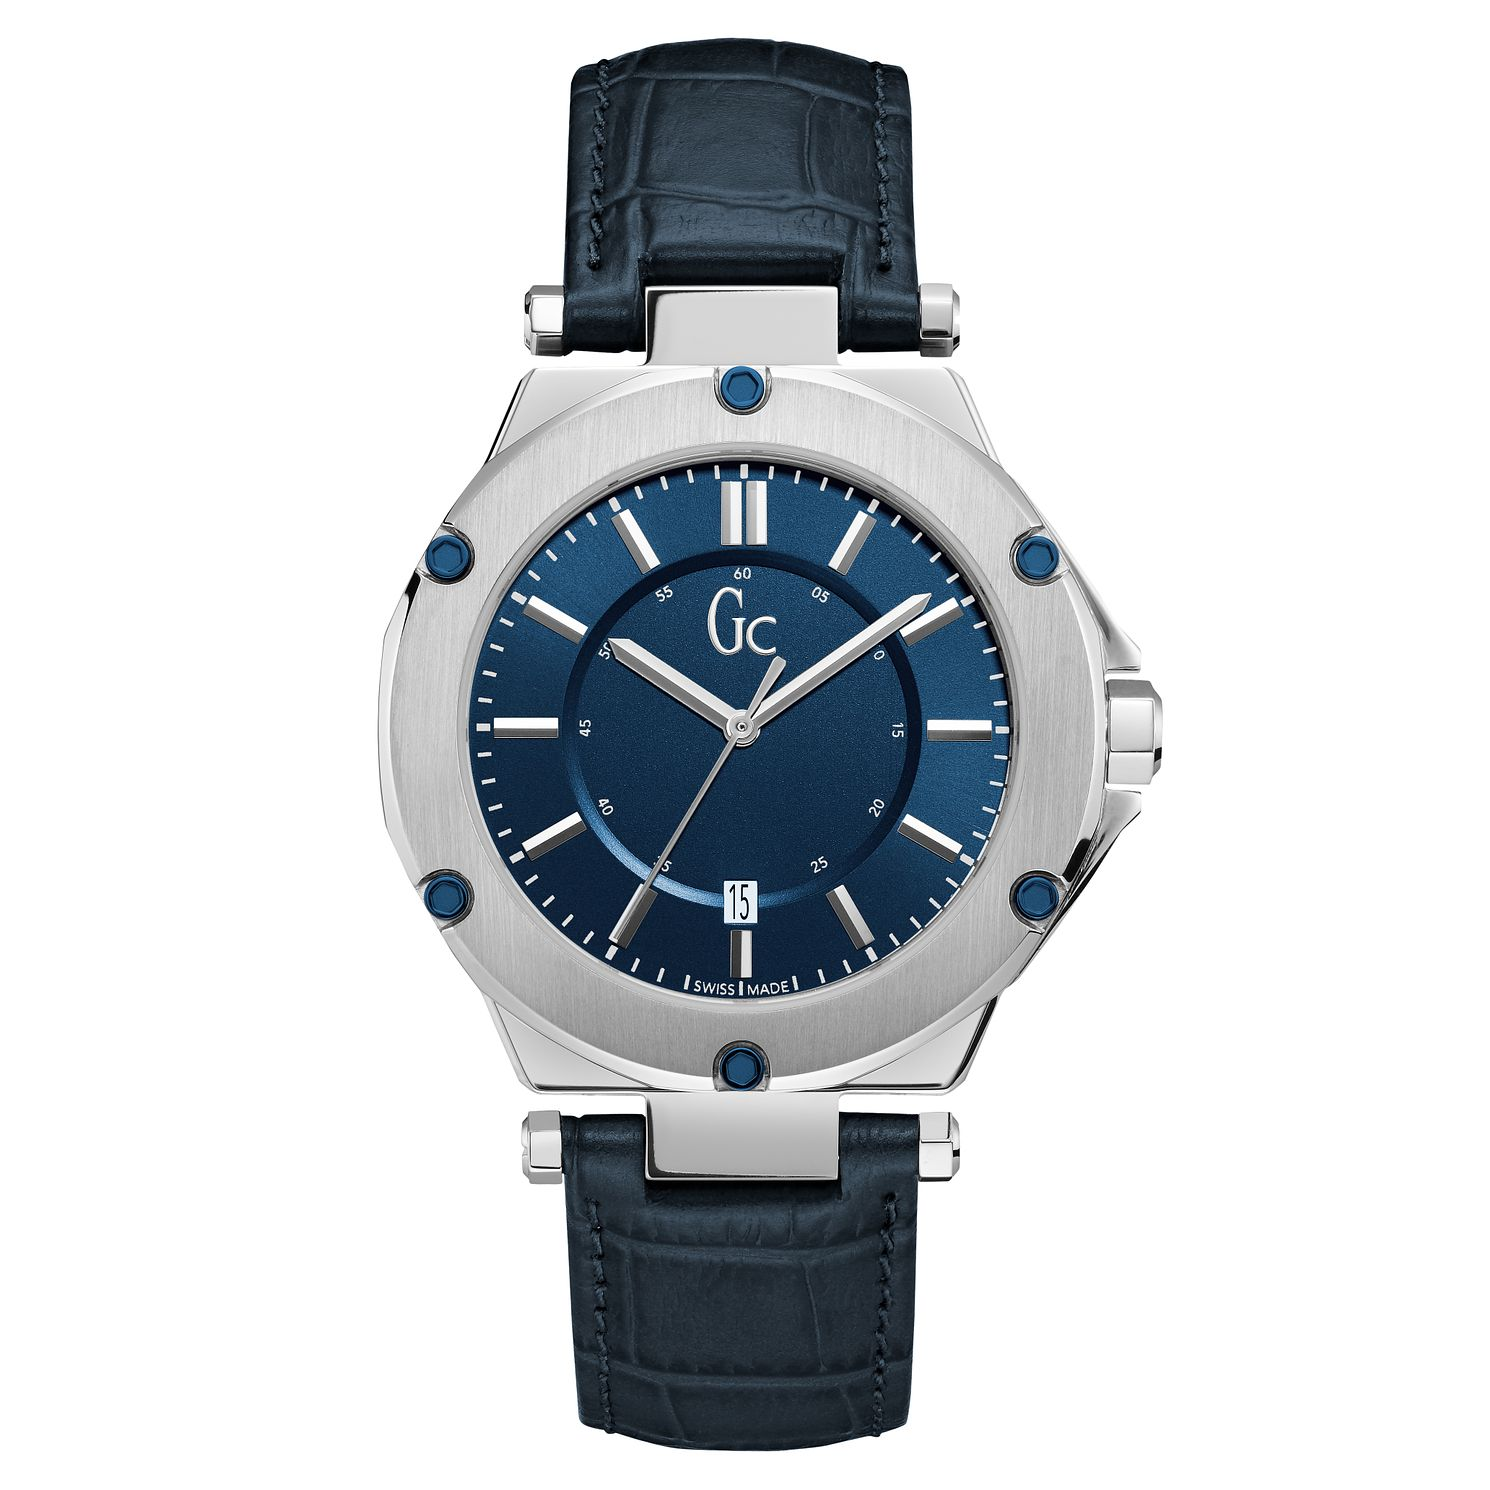 Gc 3 Sport Men's Blue Leather Strap Watch - Product number 8376468